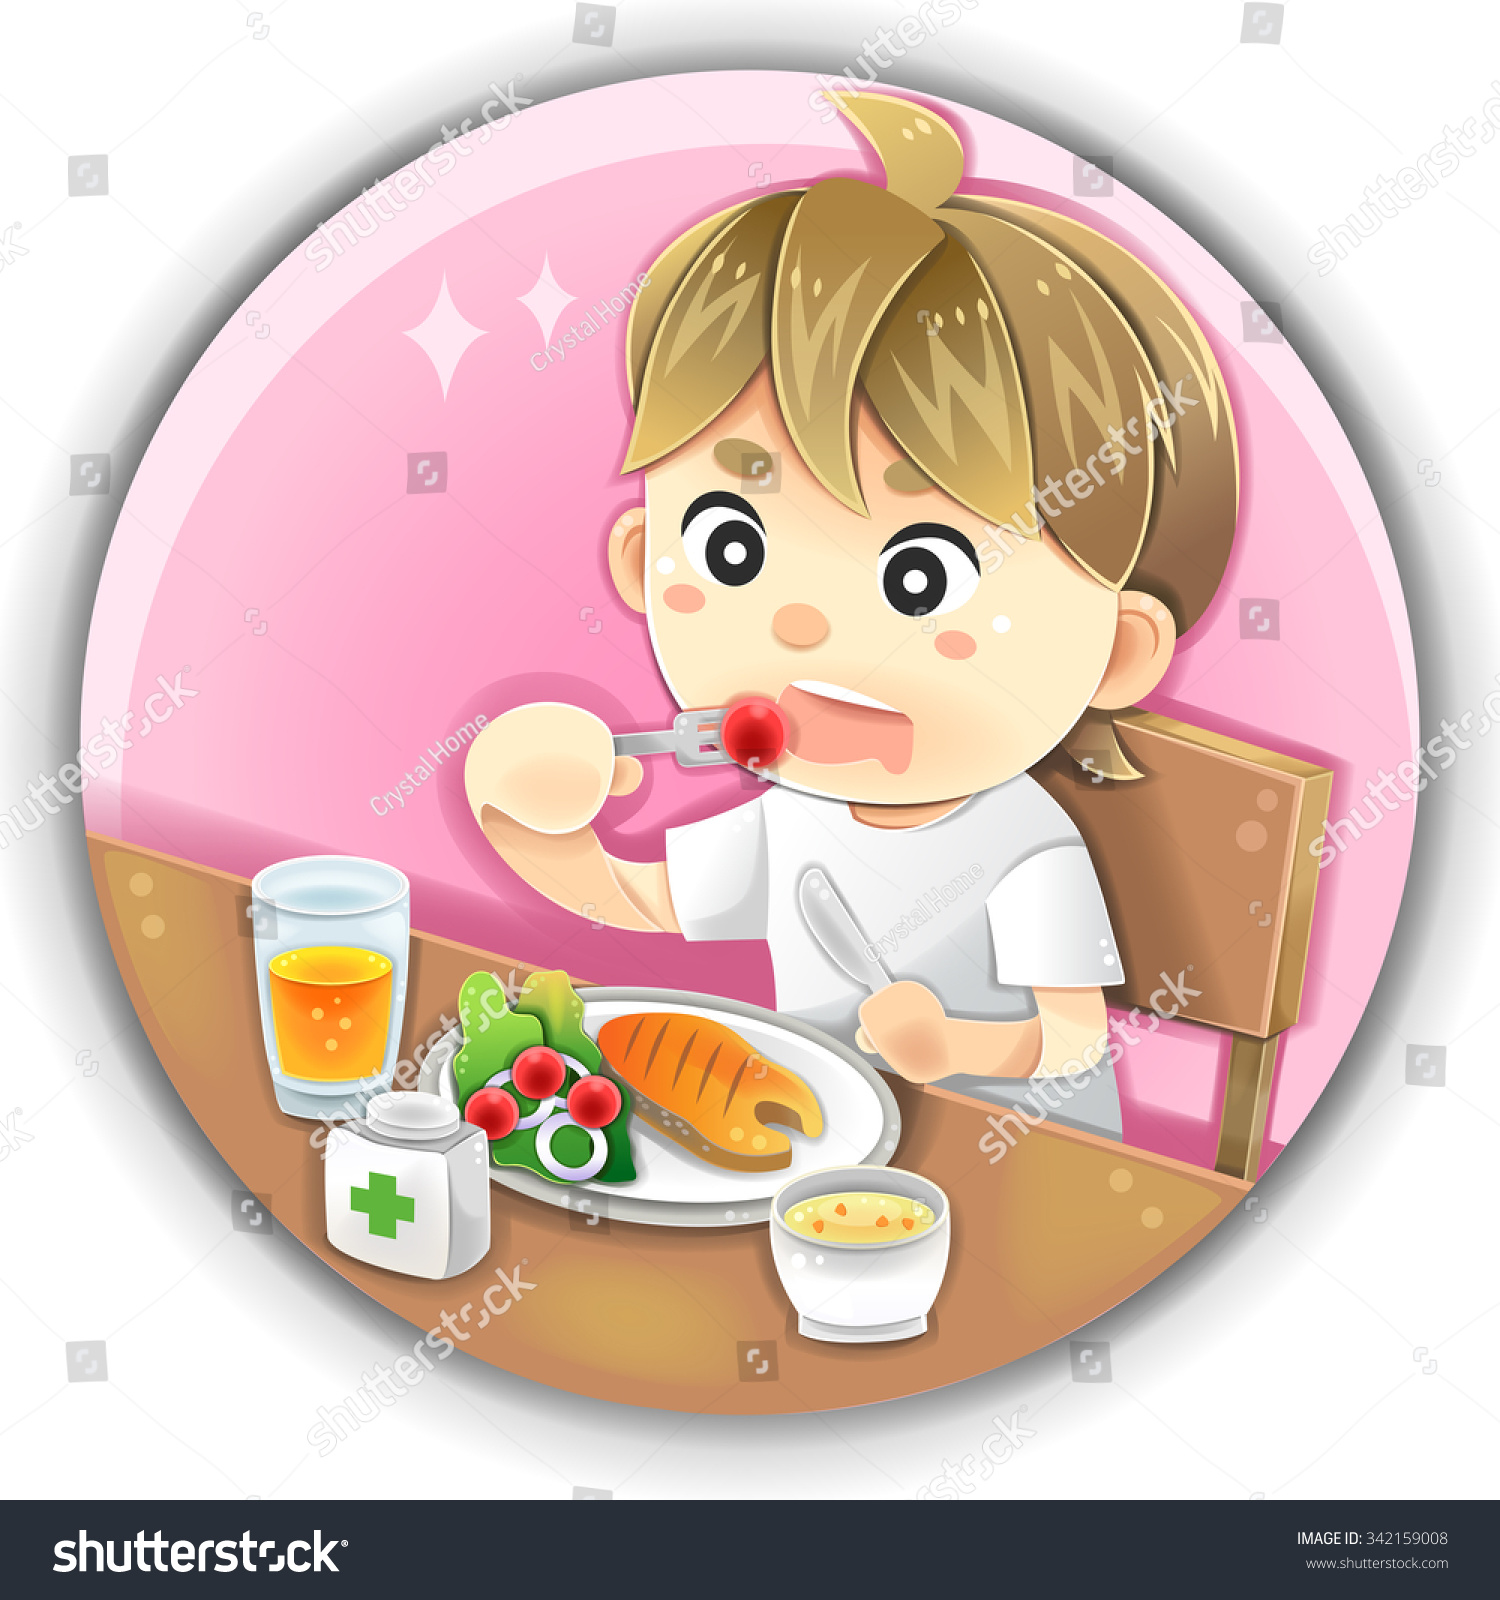 Eating and health - Cartoon Male Character Is Eating Healthy Nutrition Food Such As Salmon Fish Steak Vegetable Fruit Juice